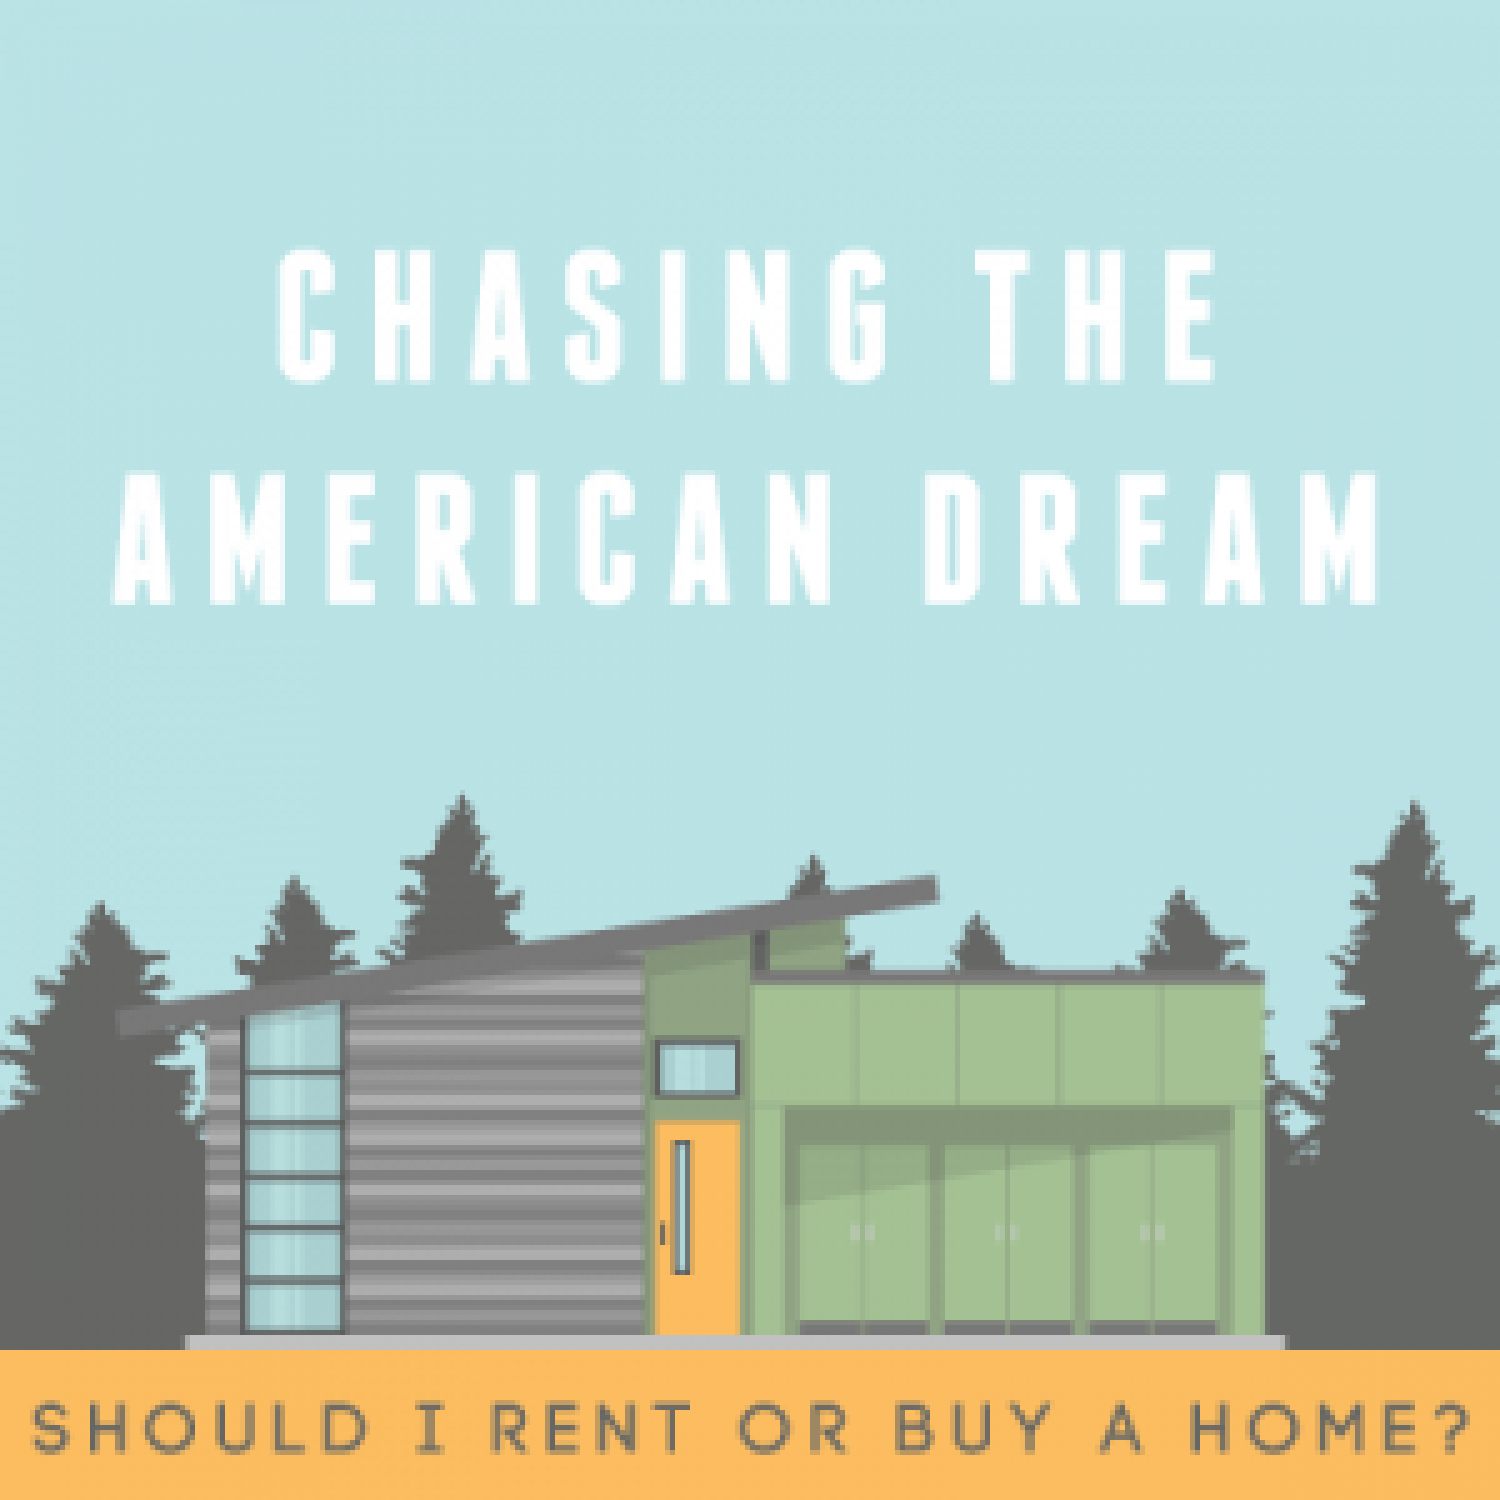 Chasing The American Dream Should I Rent Or Buy A Home? Infographic